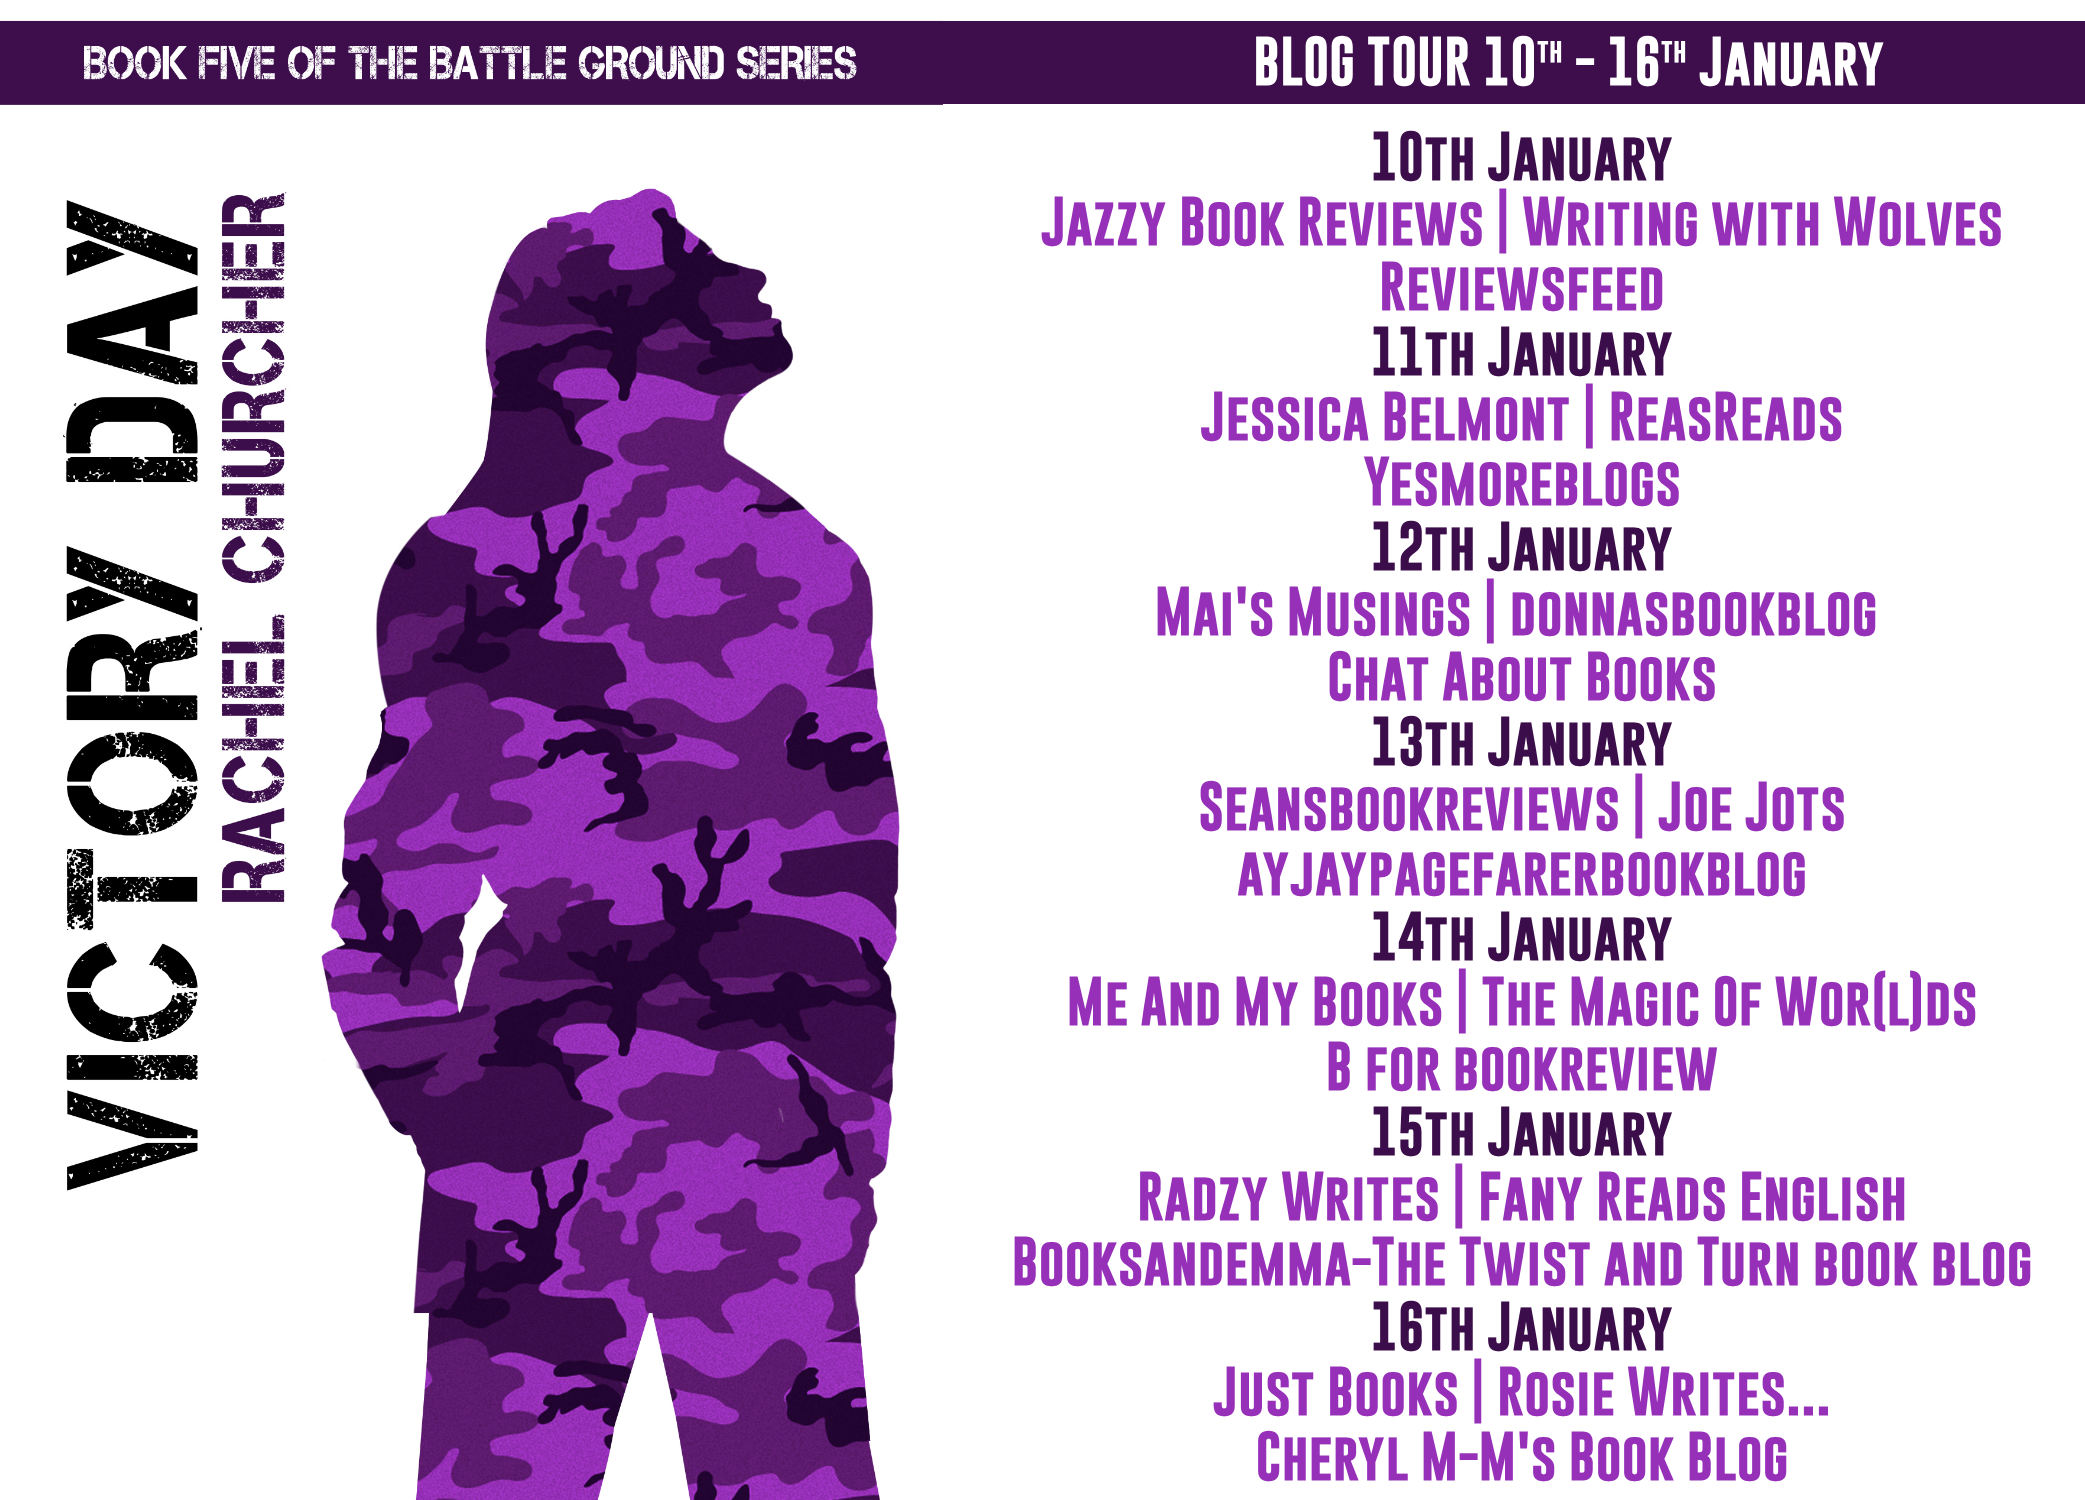 Victory Day Blog Tour